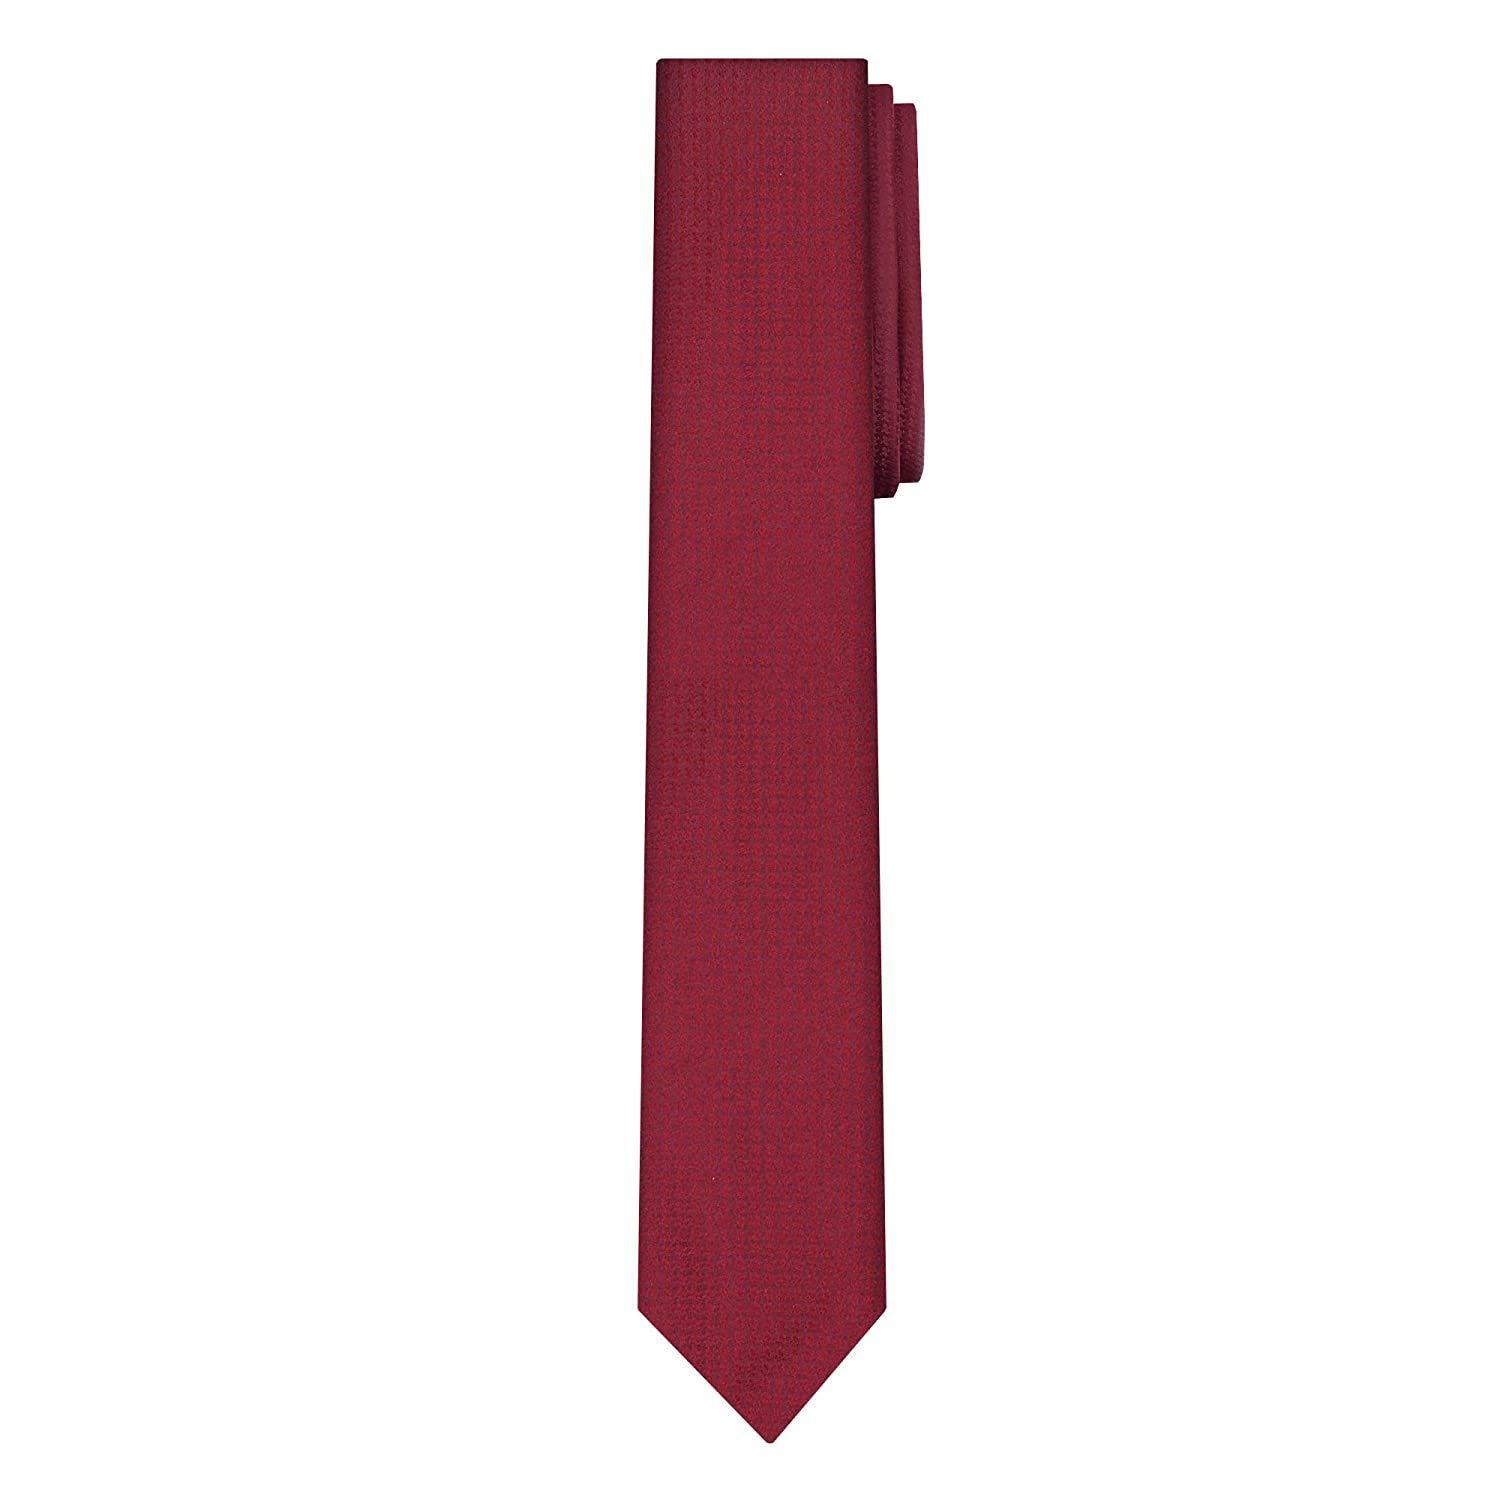 Jacob Alexander Boys Tone on Tone Houndstooth Neck Tie